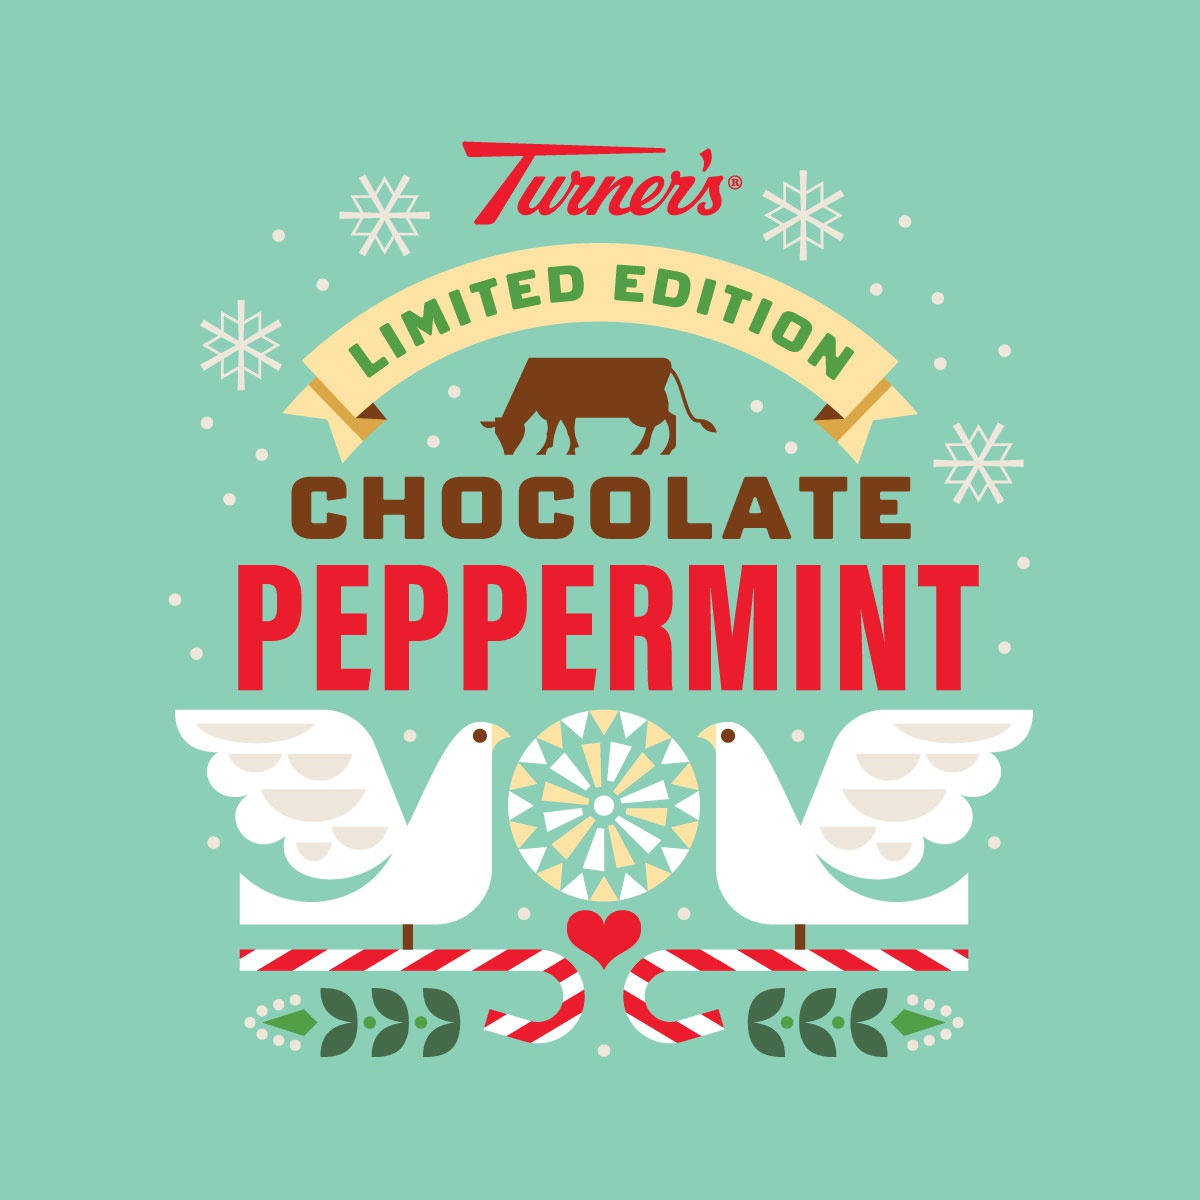 Turner 2017 chocolatepeppermint ig1